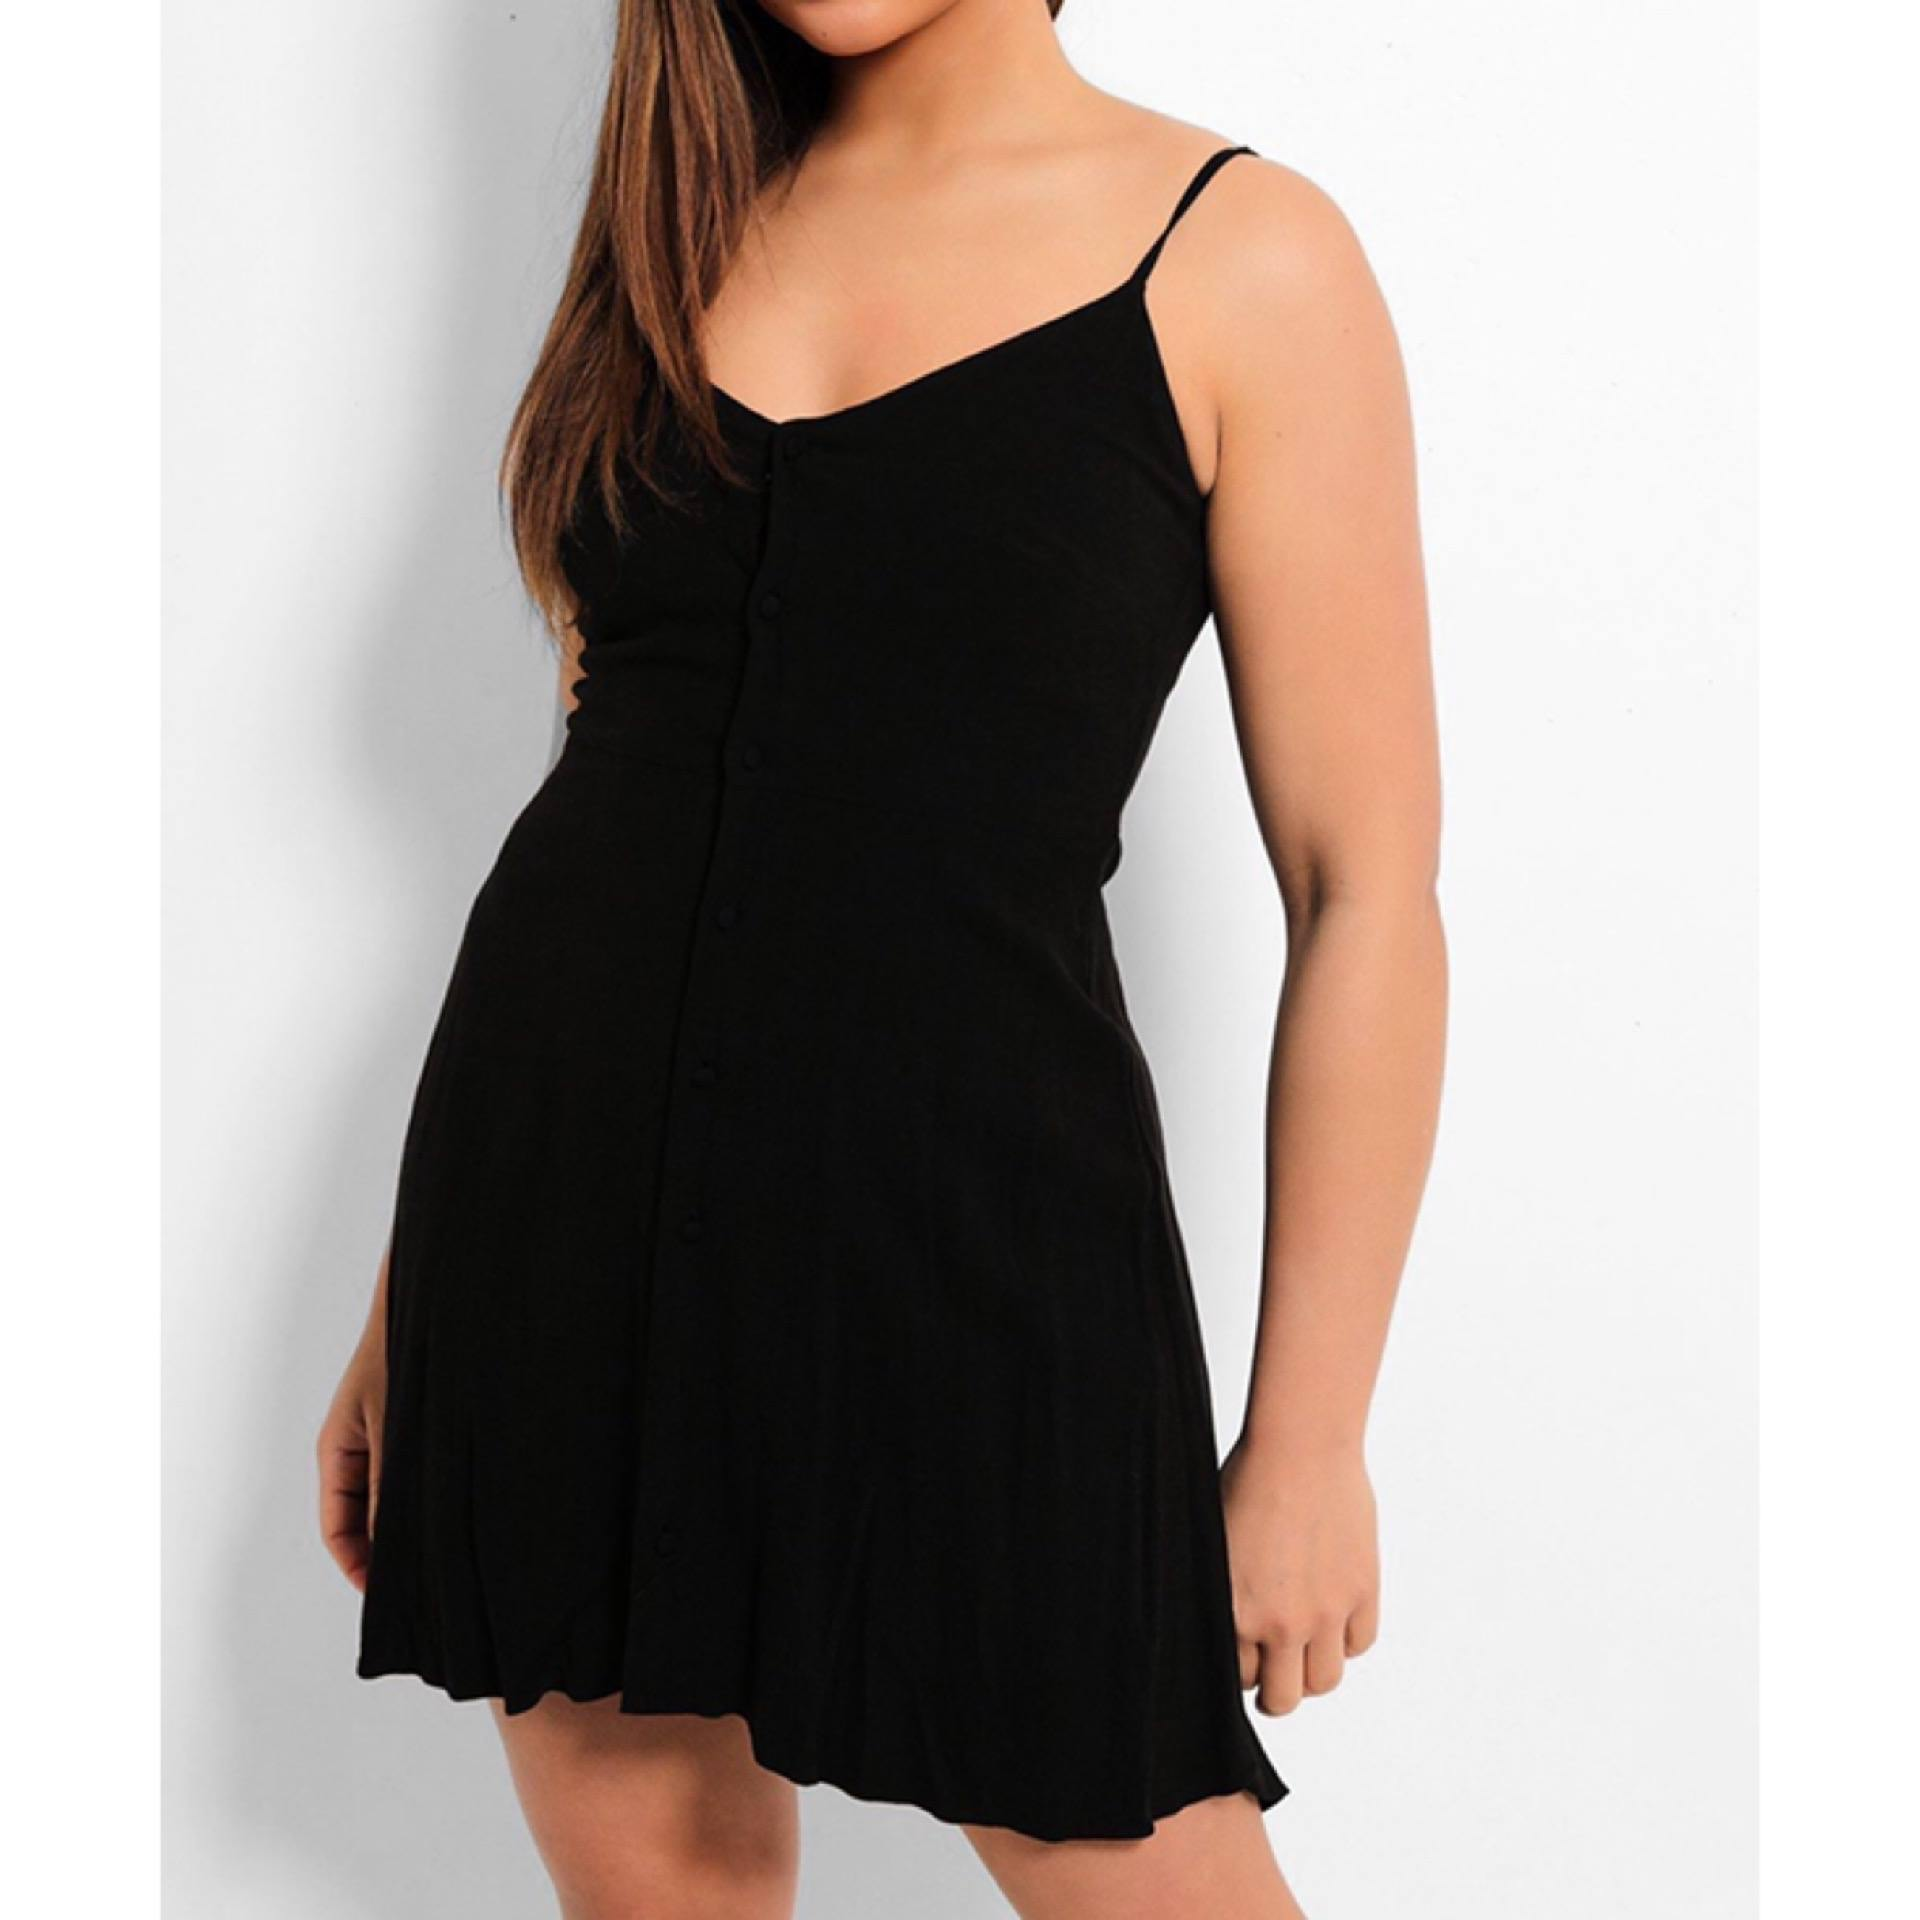 Black Button Up Dress - Flamour.ro